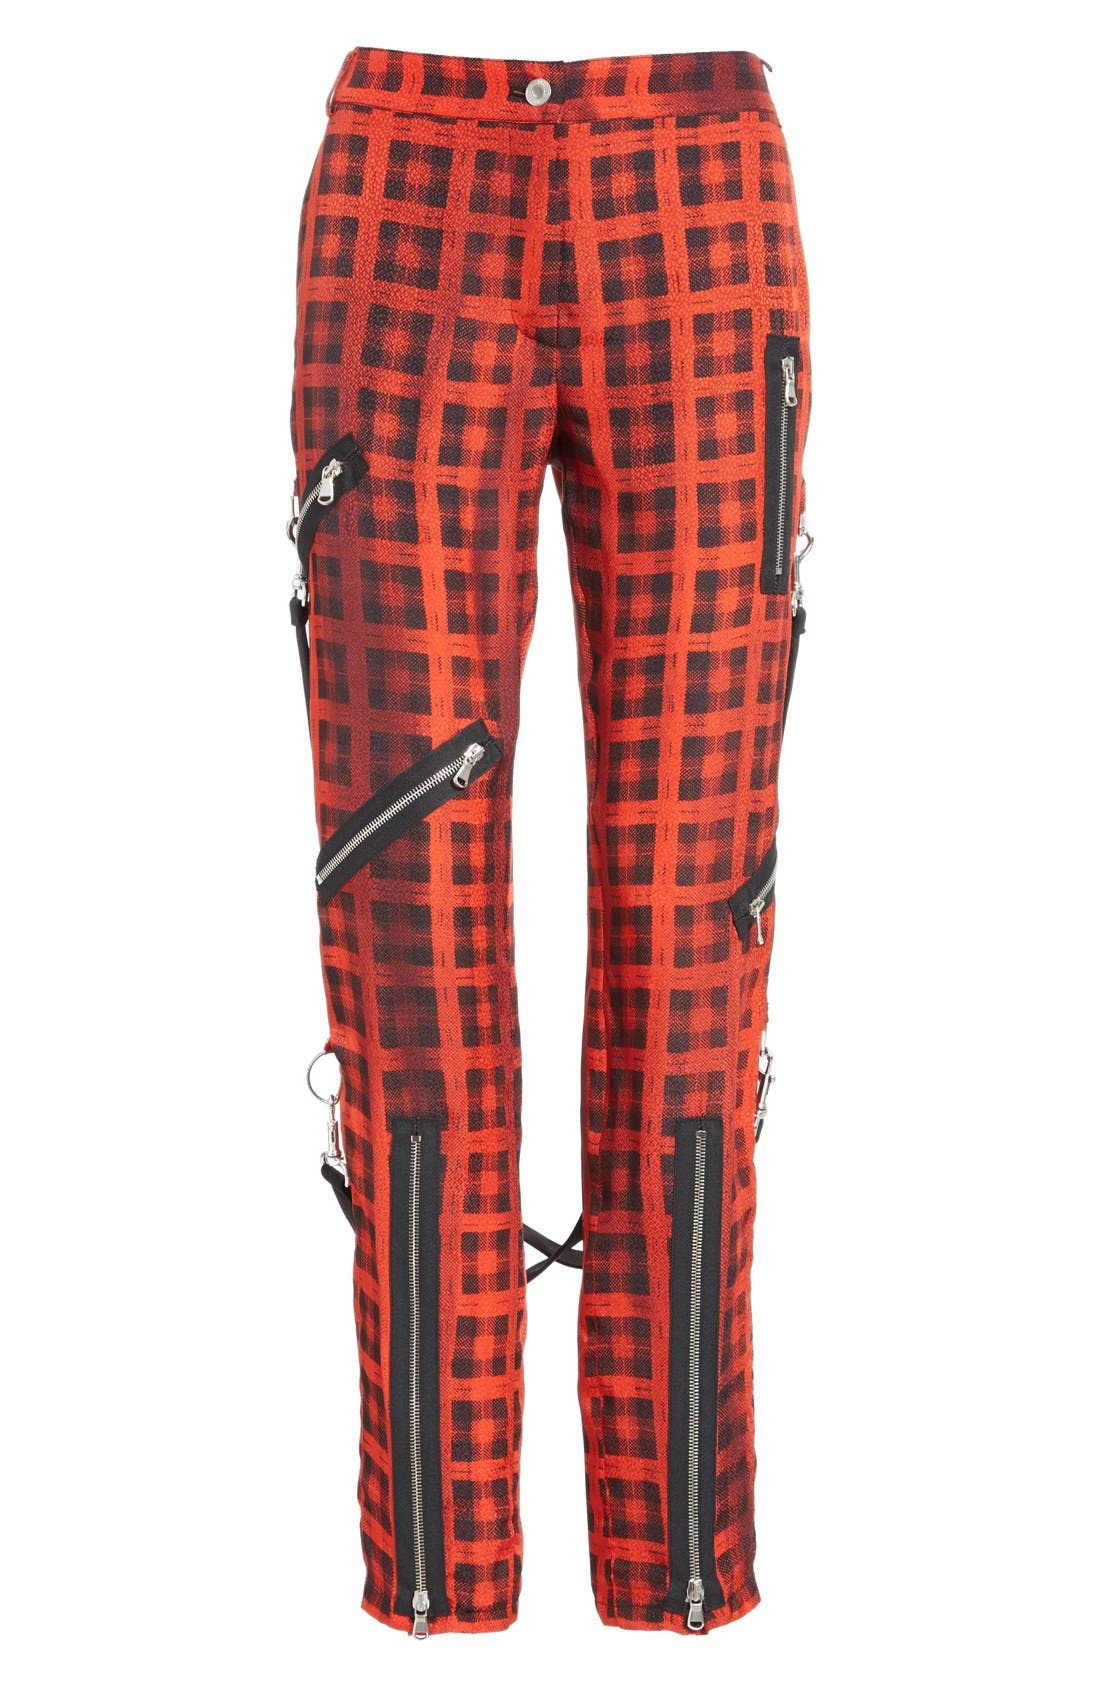 Alternate Image 4  - Moschino Plaid Print Ankle Pants with Detachable Suspenders